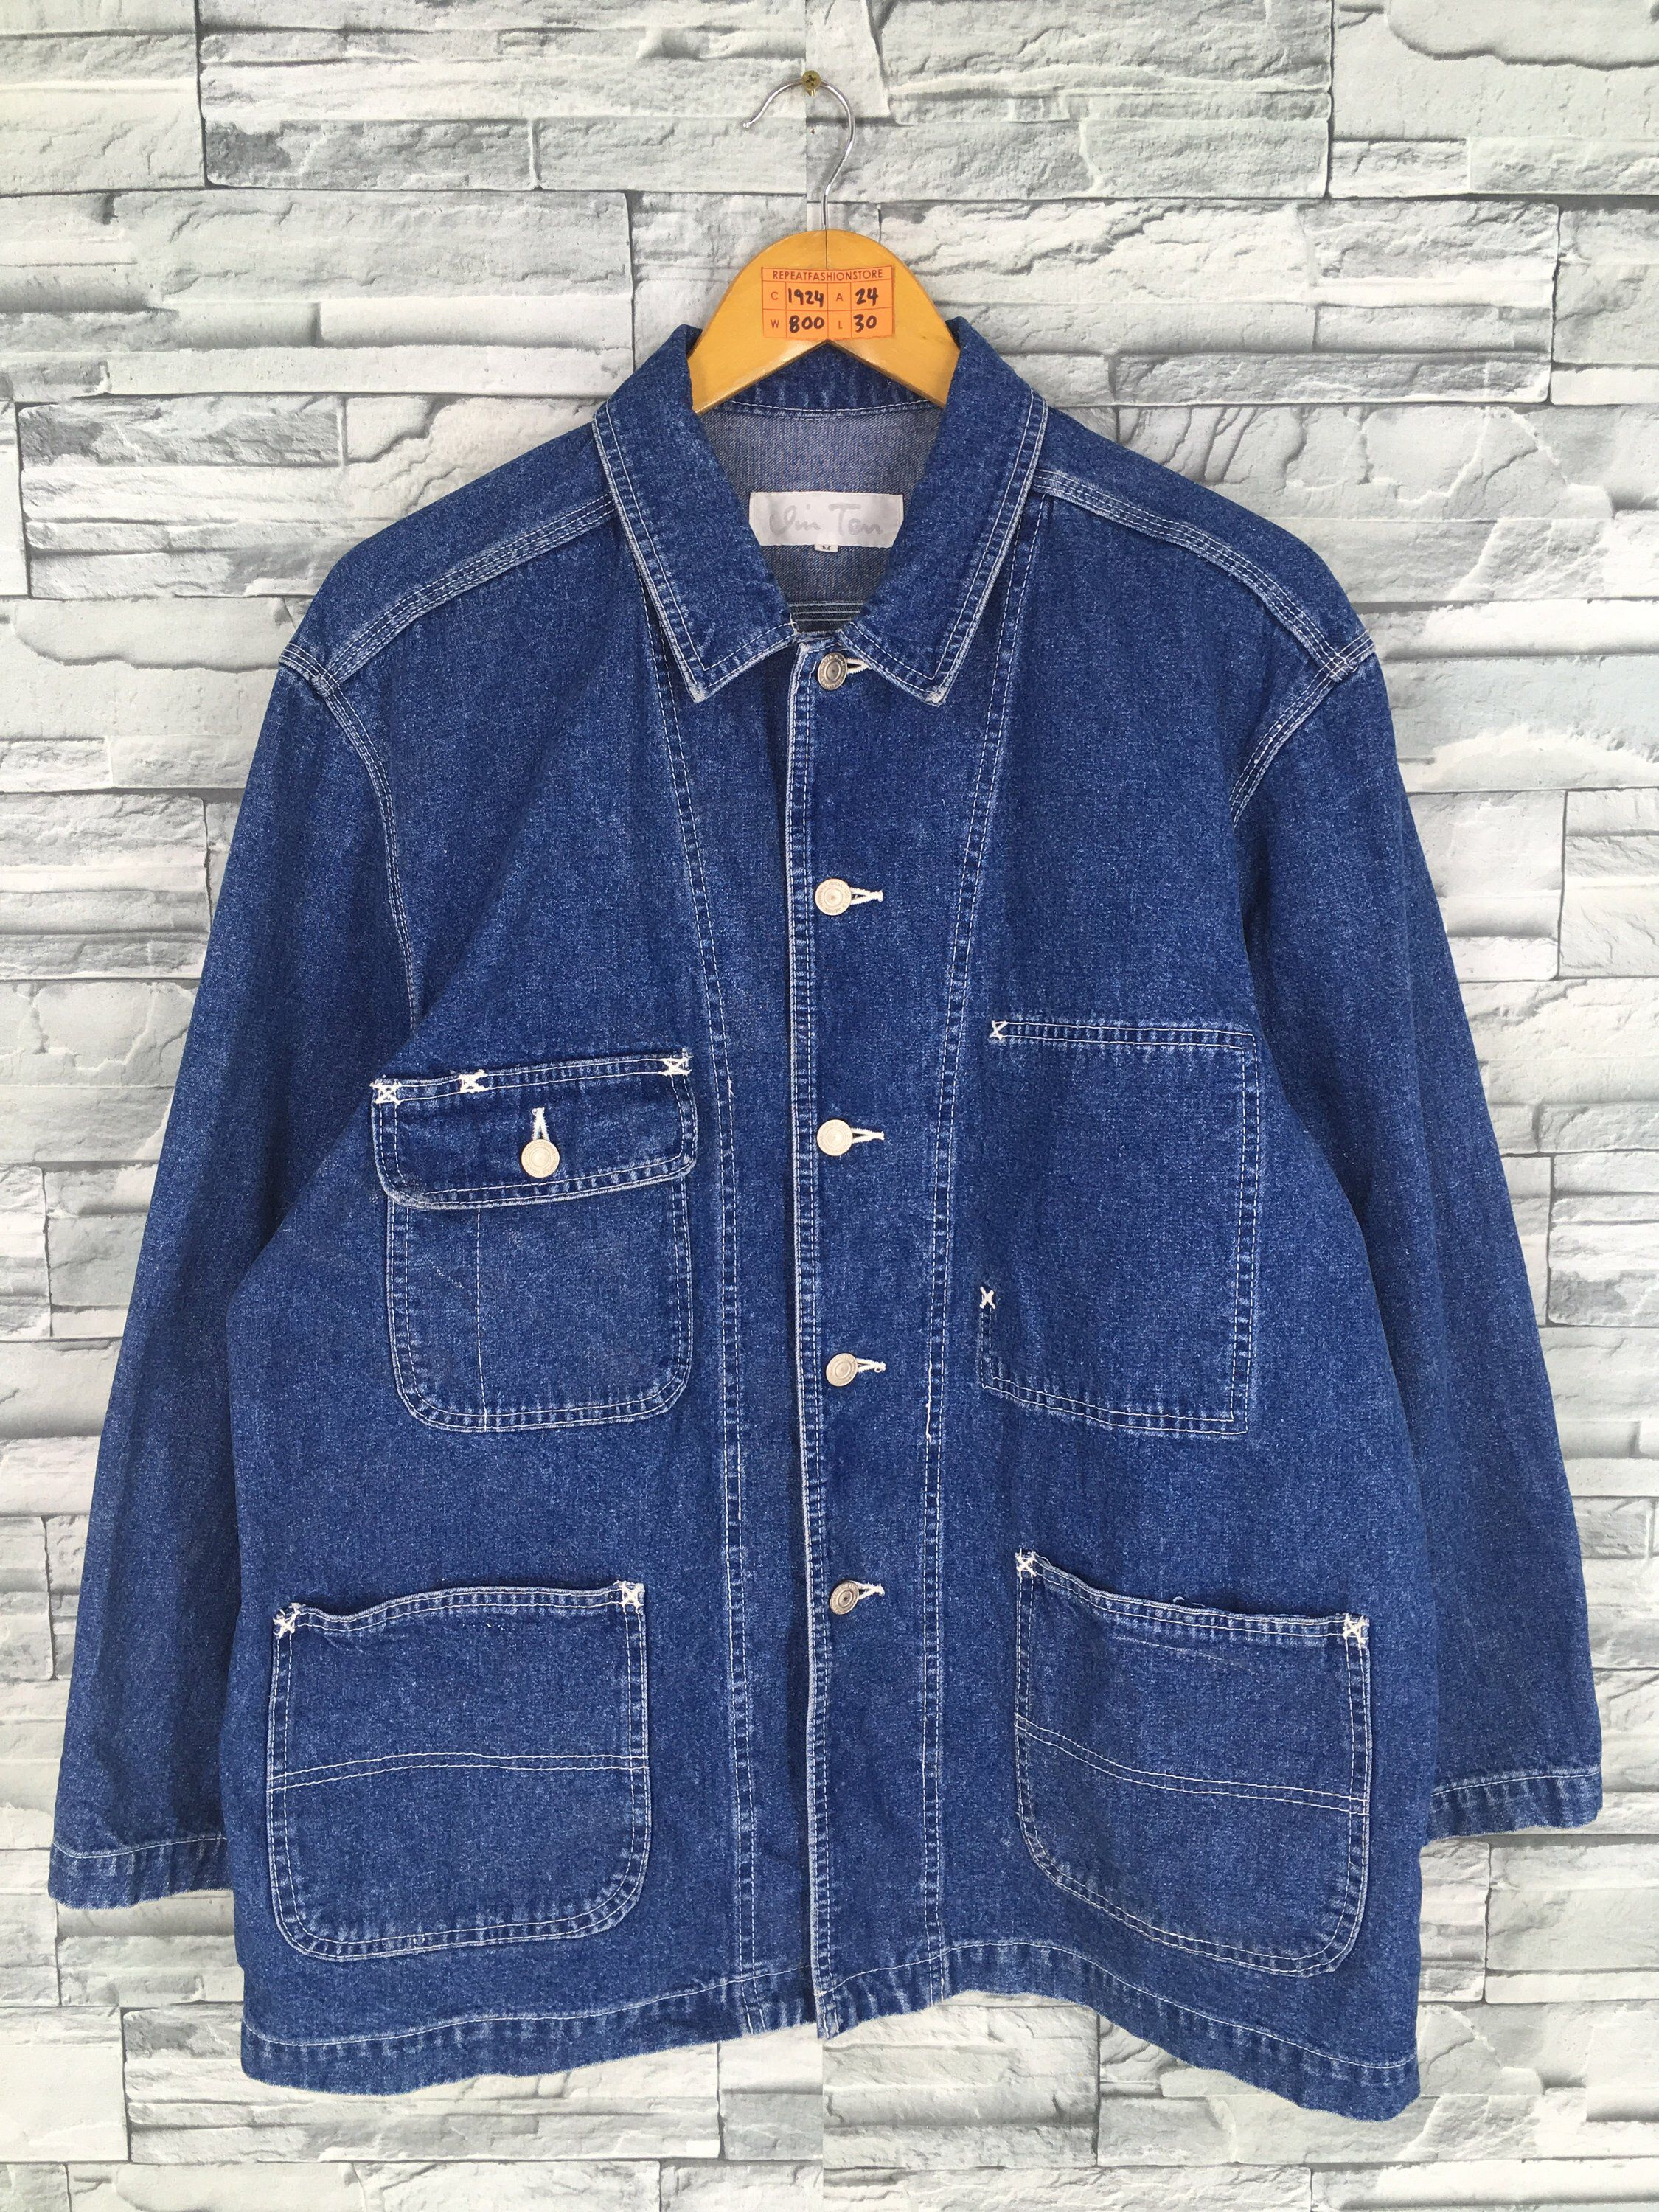 06ecb7e7bac Excited to share this item from my #etsy shop: Vintage 90's Denim Jeans  Jacket